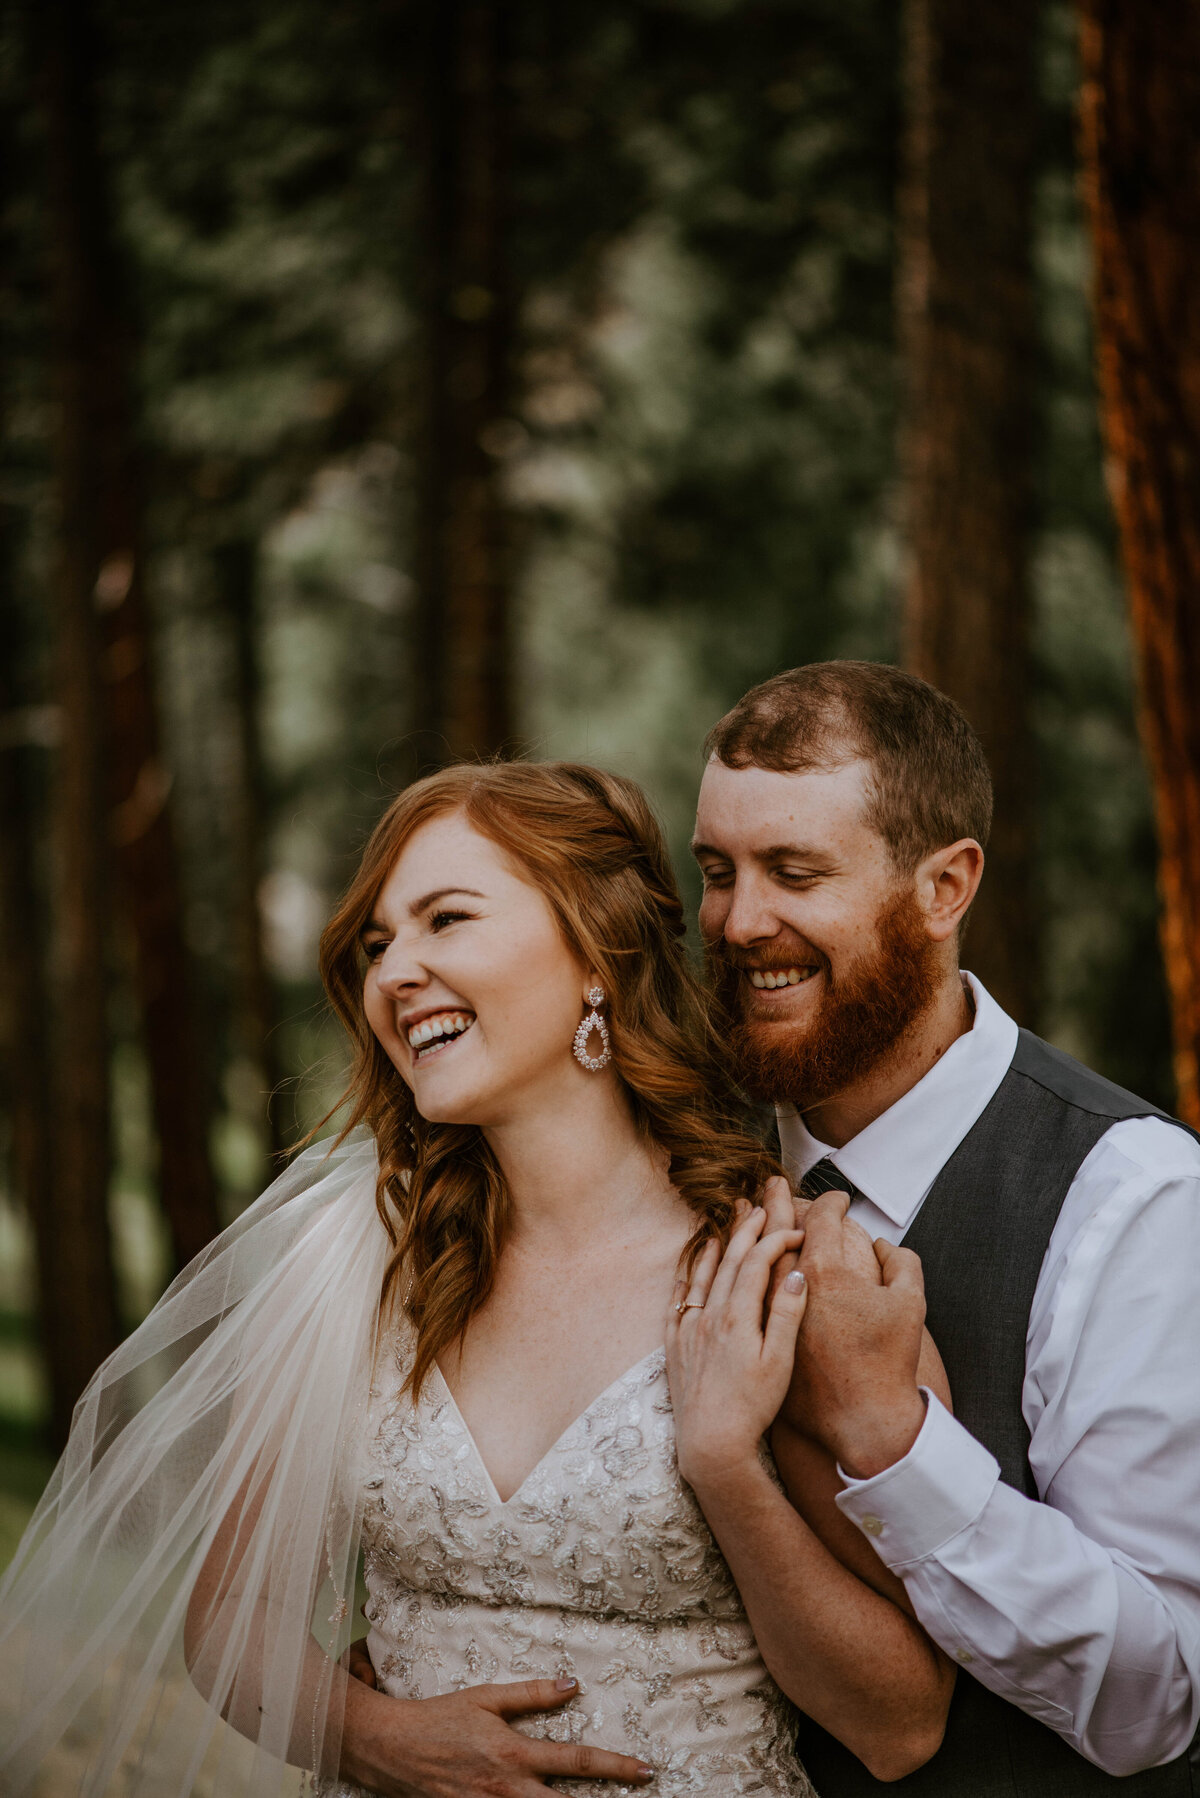 ochoco-forest-central-oregon-elopement-pnw-woods-wedding-covid-bend-photographer-inspiration2469-Edit